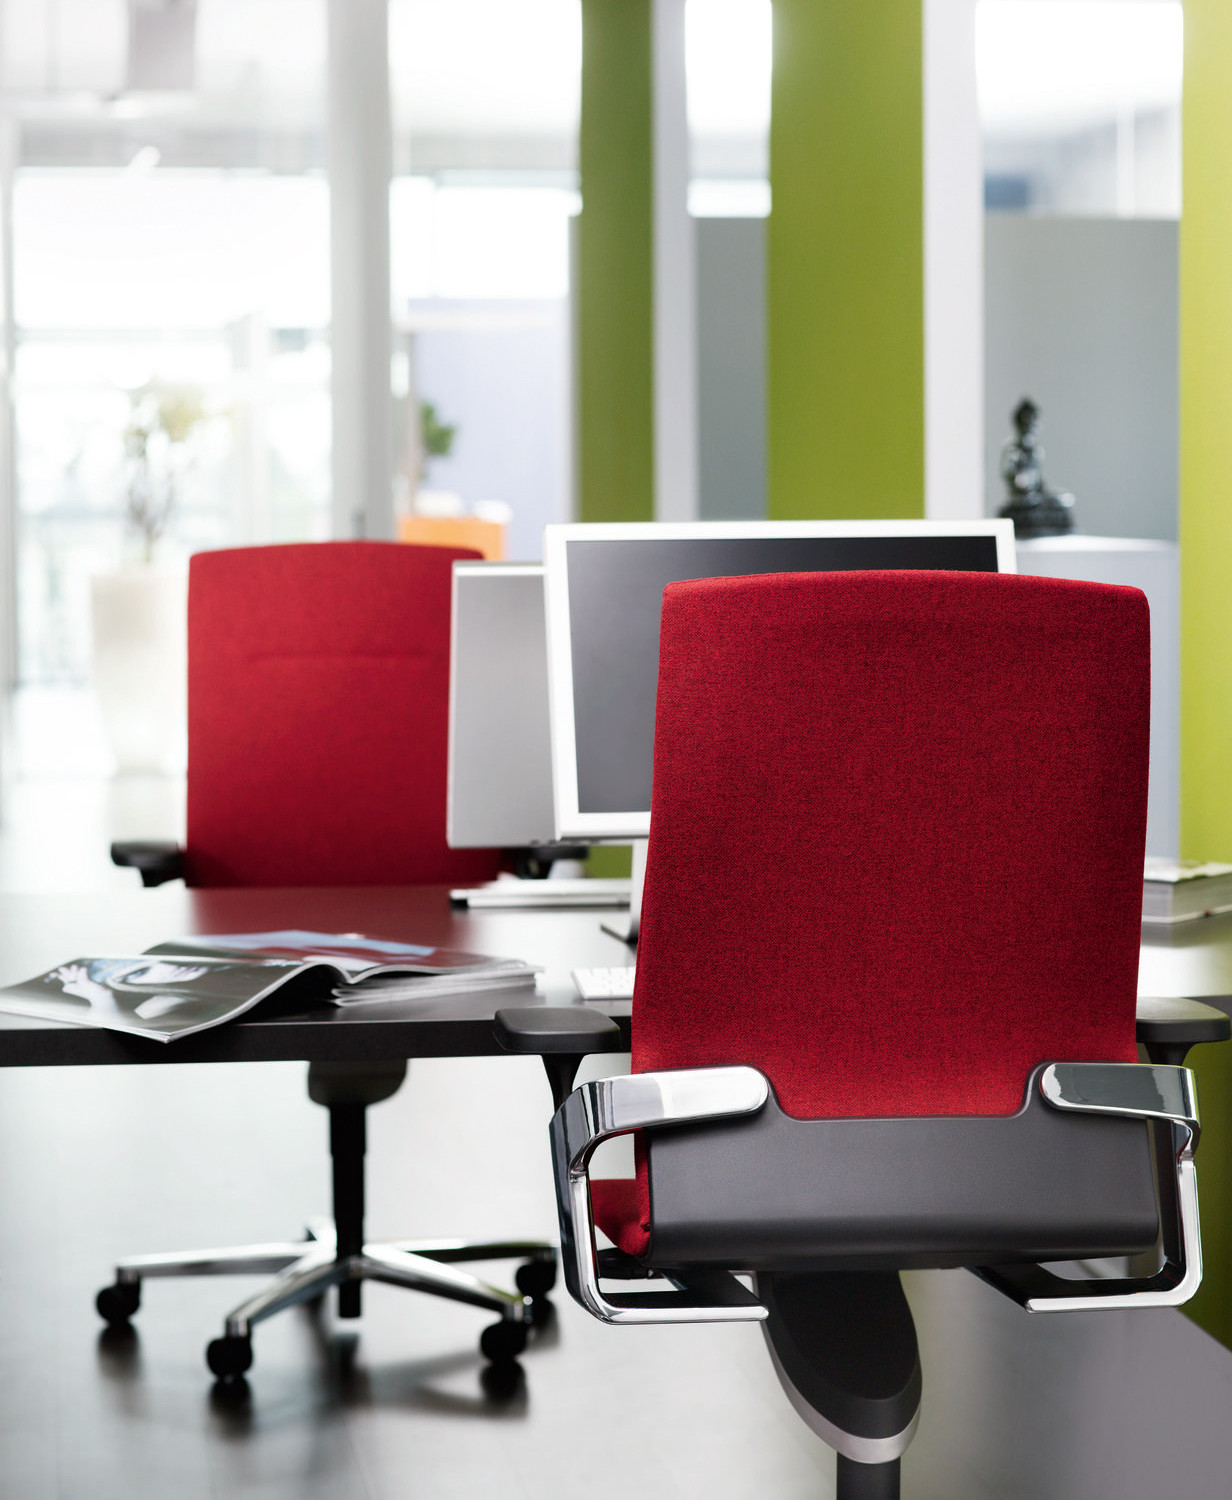 On Task Chairs from Wilkhahn